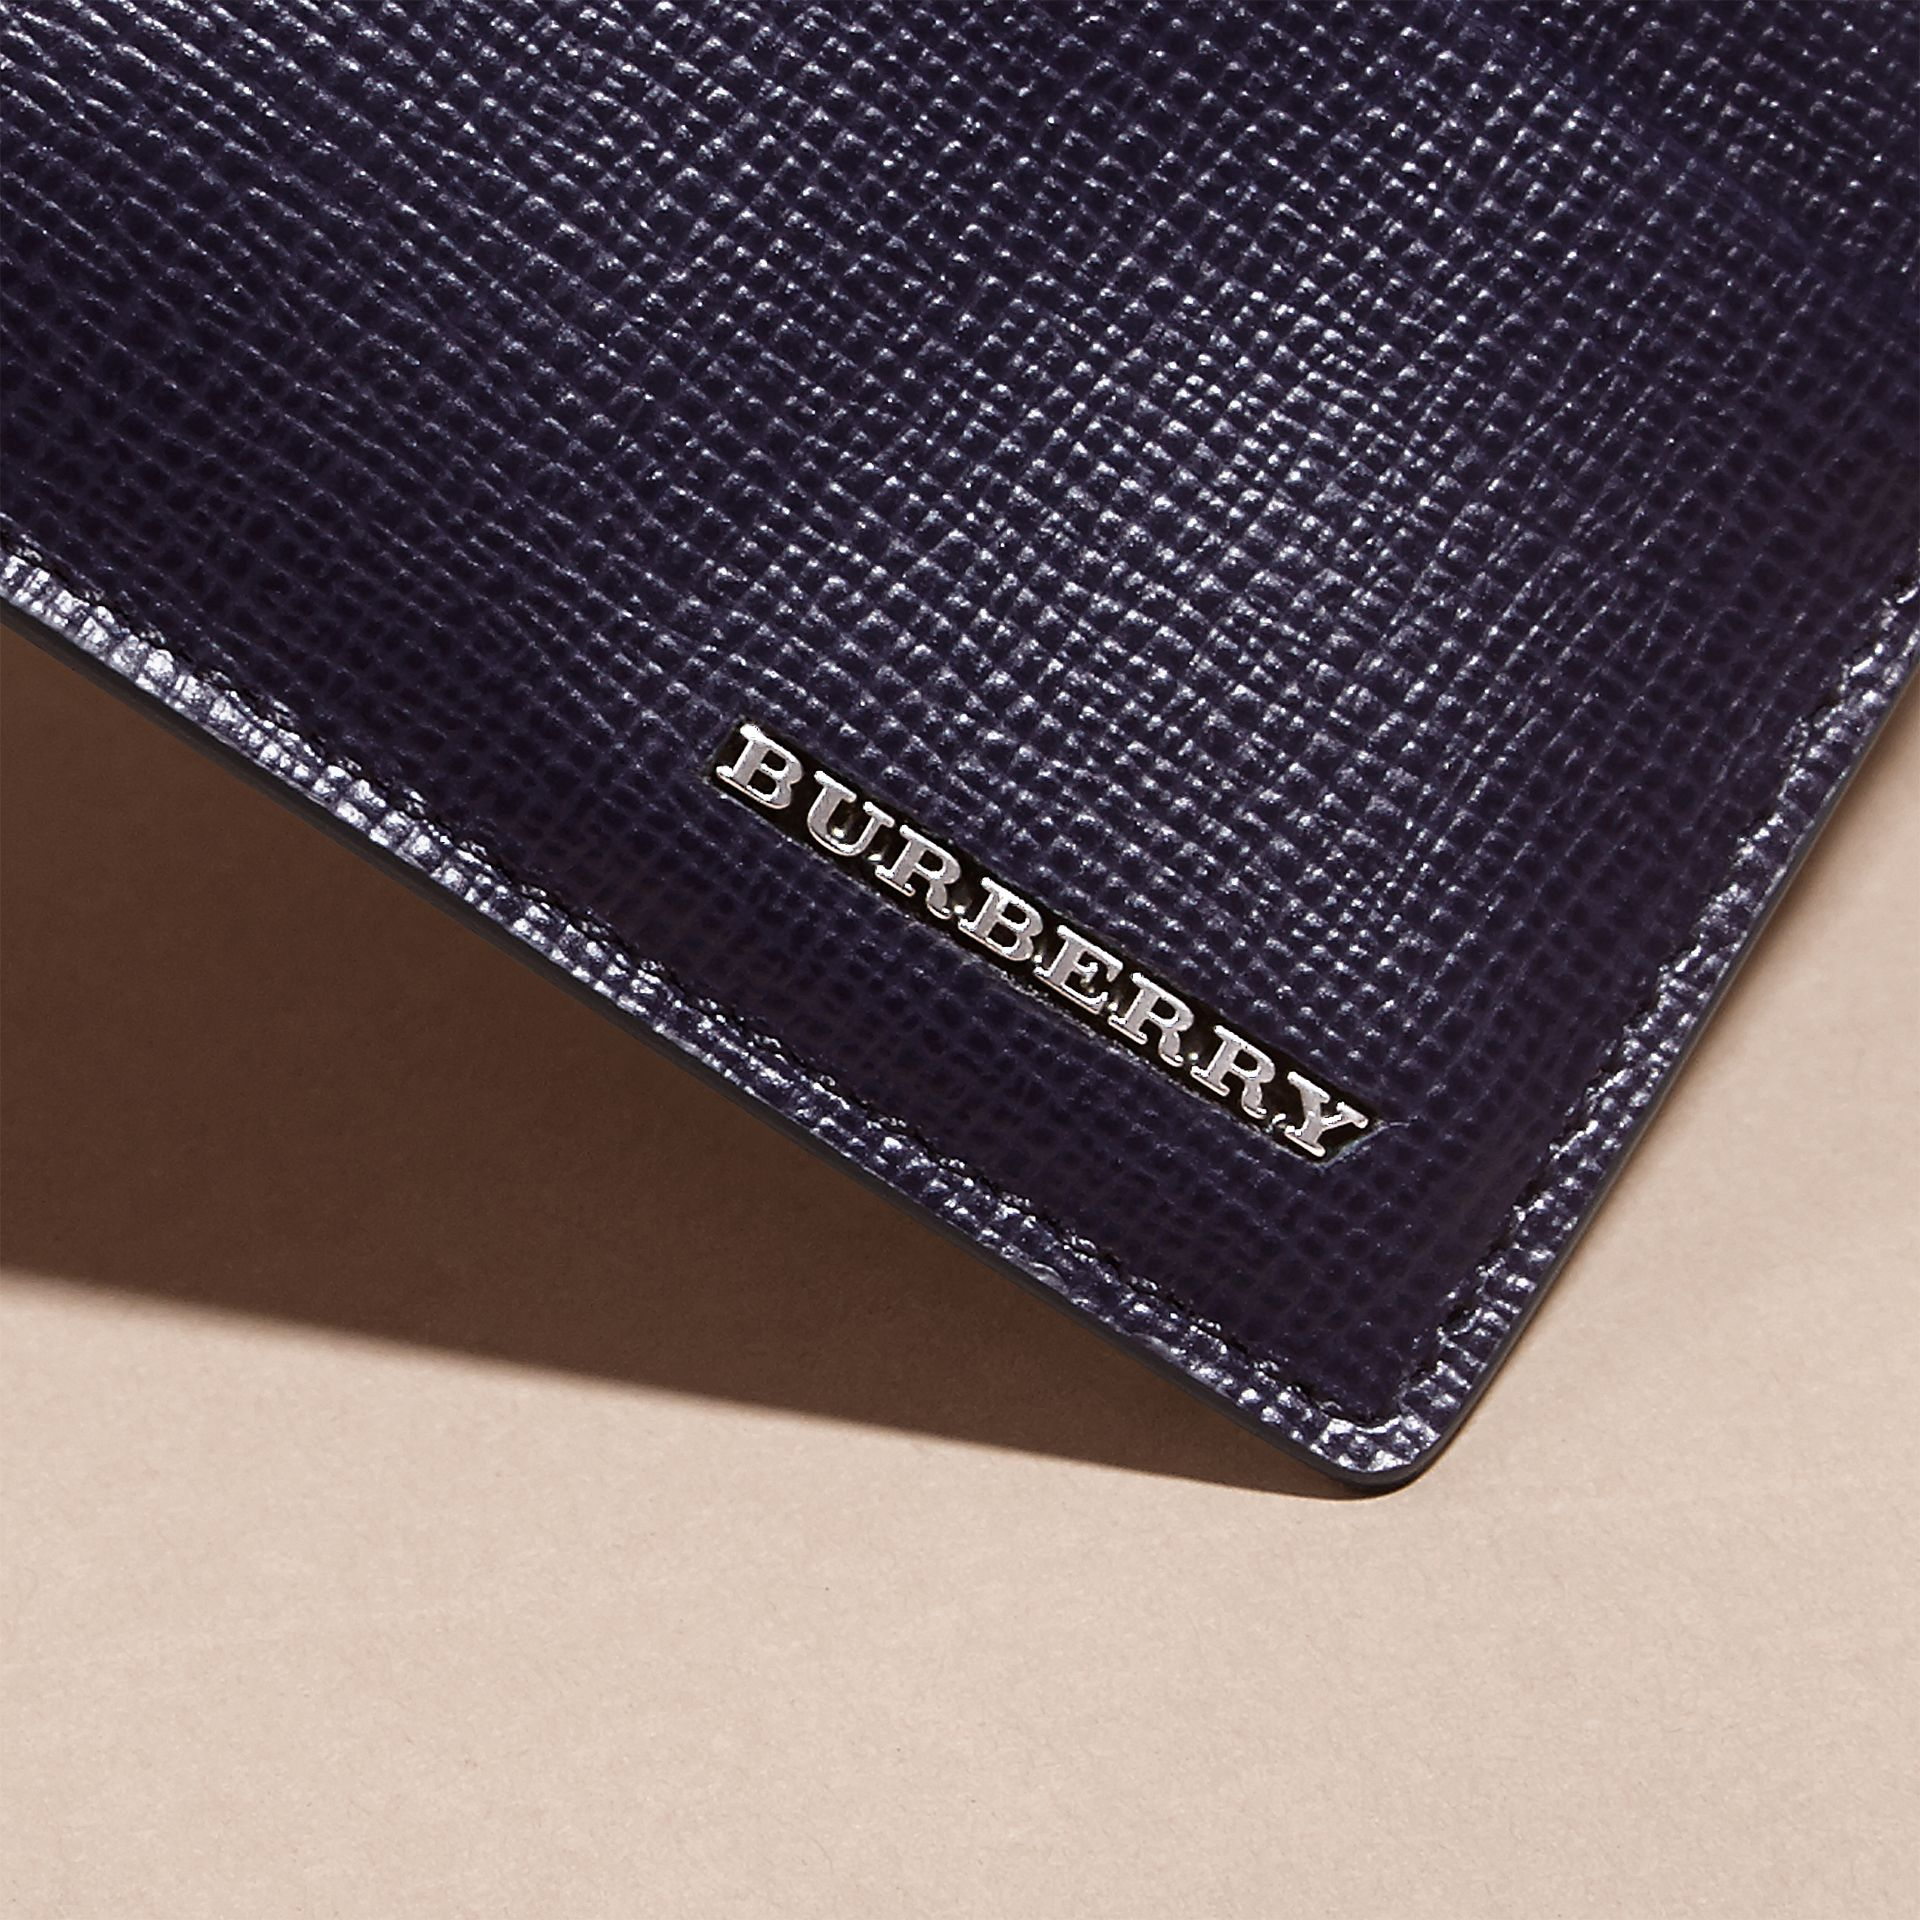 London Leather Card Case in Dark Navy - Men | Burberry - gallery image 2